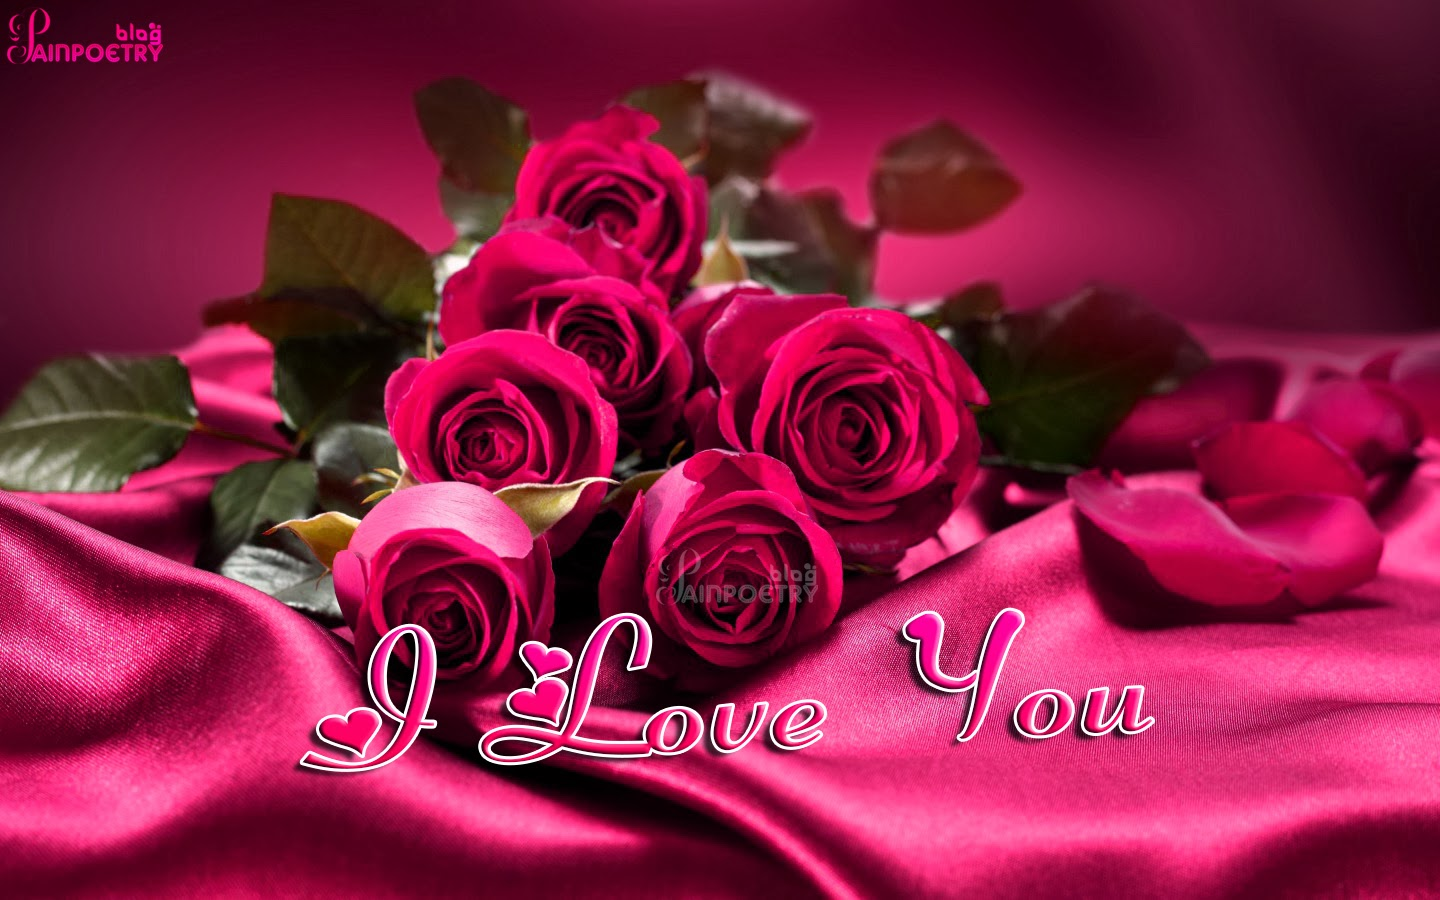 Love-Wallpaper-With-Lot-Of-Flowers-Image-HD-Wide